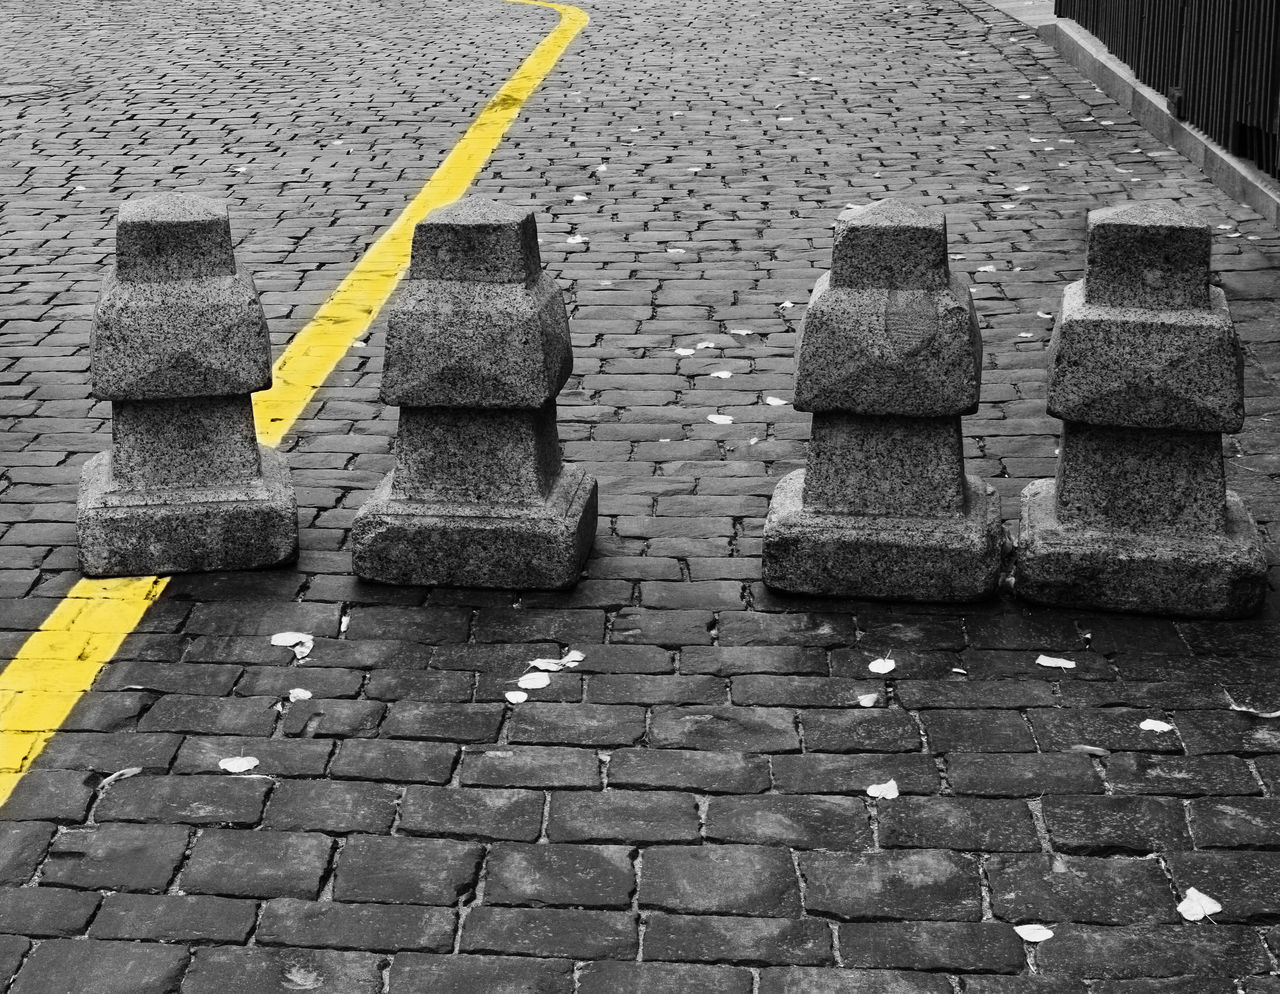 Yellow Outdoors Day No People Close-up Grey And Yellow Texture Stones Stone Road Road Street Photography Streetphoto_bw City Street Cityphotography City B/w Collection B/W Photography